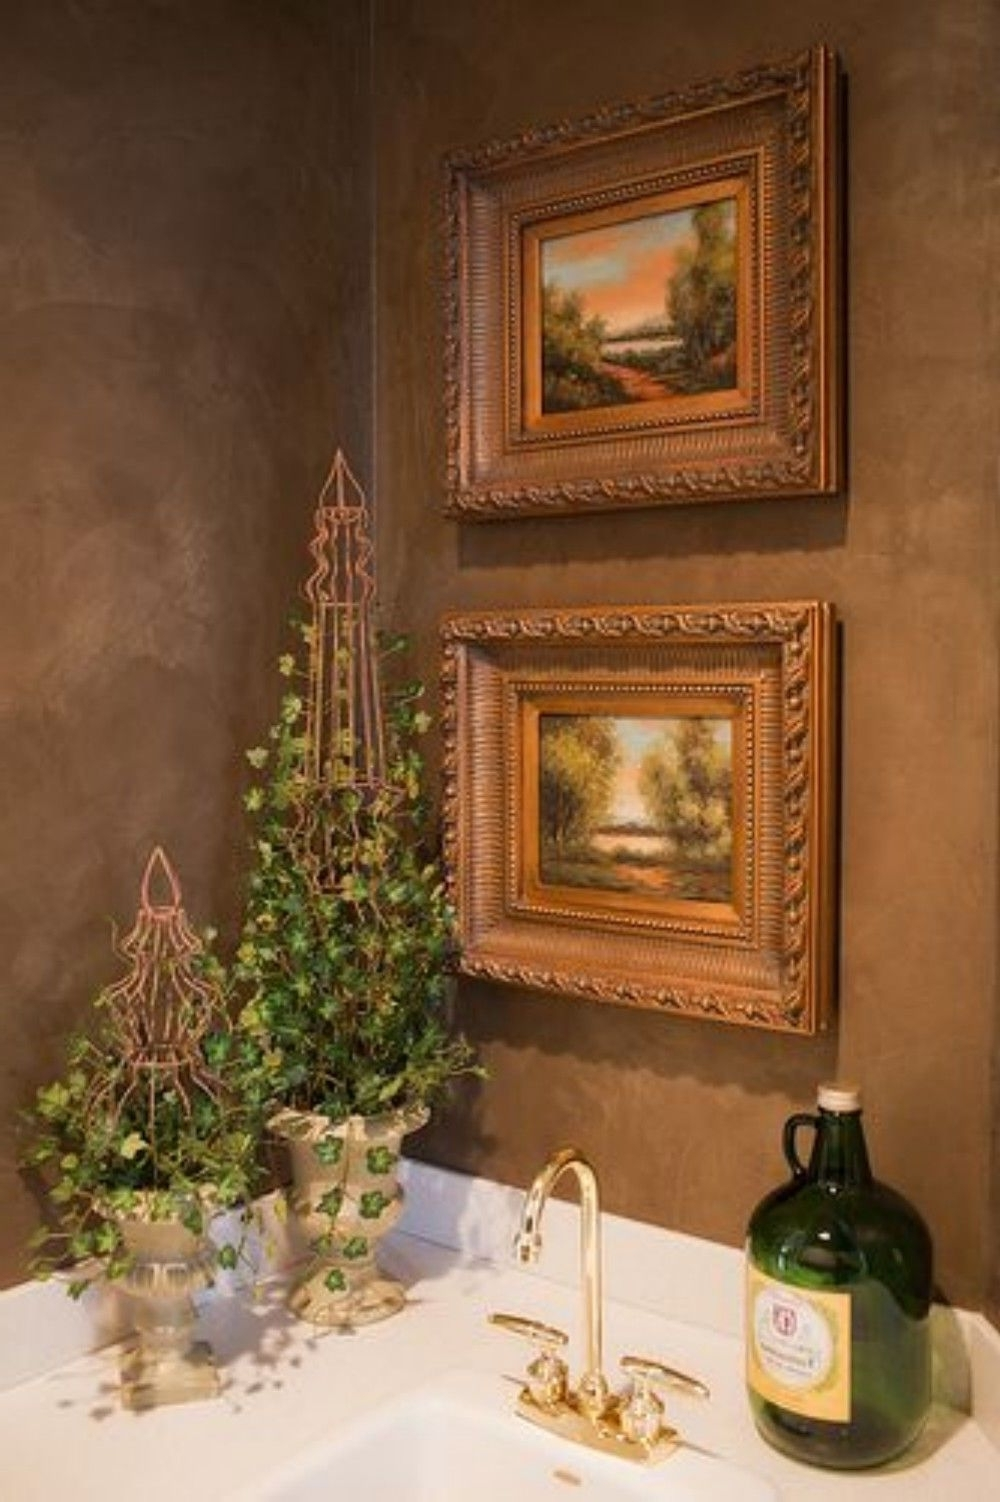 Italian Wall Art For Bathroom Intended For Most Up To Date Nice 82 Luxurious Tuscan Bathroom Decor Ideas Https (Gallery 9 of 15)